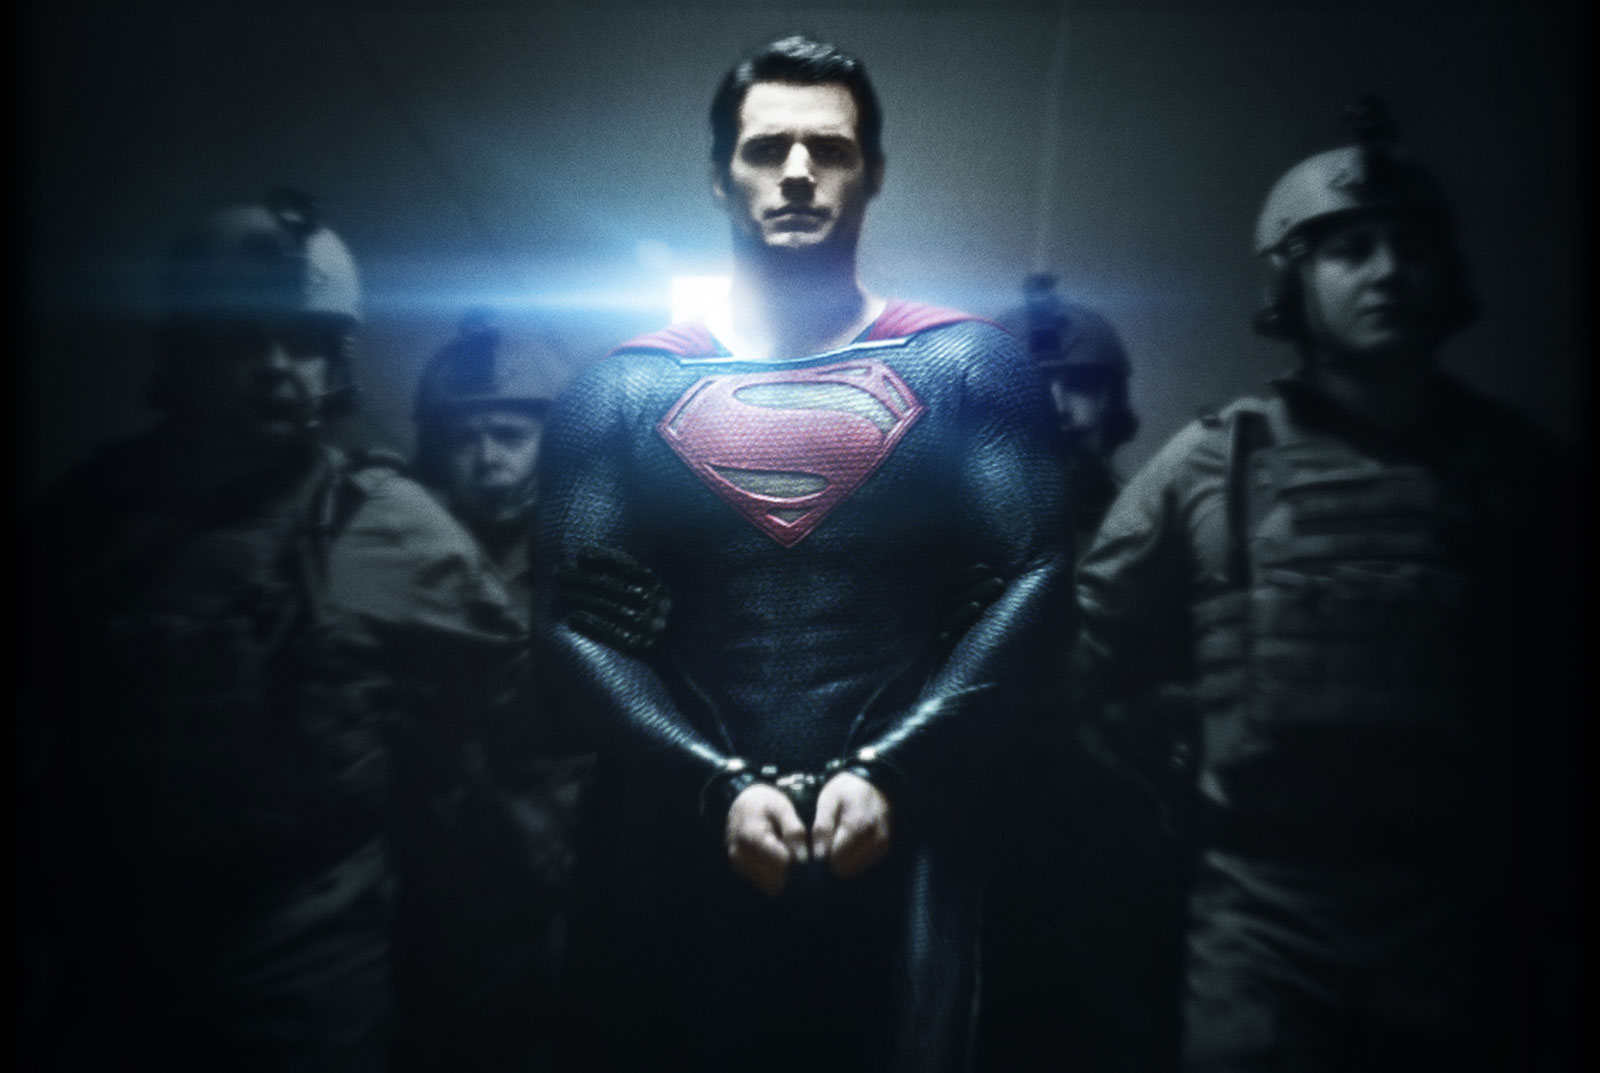 Is the Man of Steel the Prince of Peace?